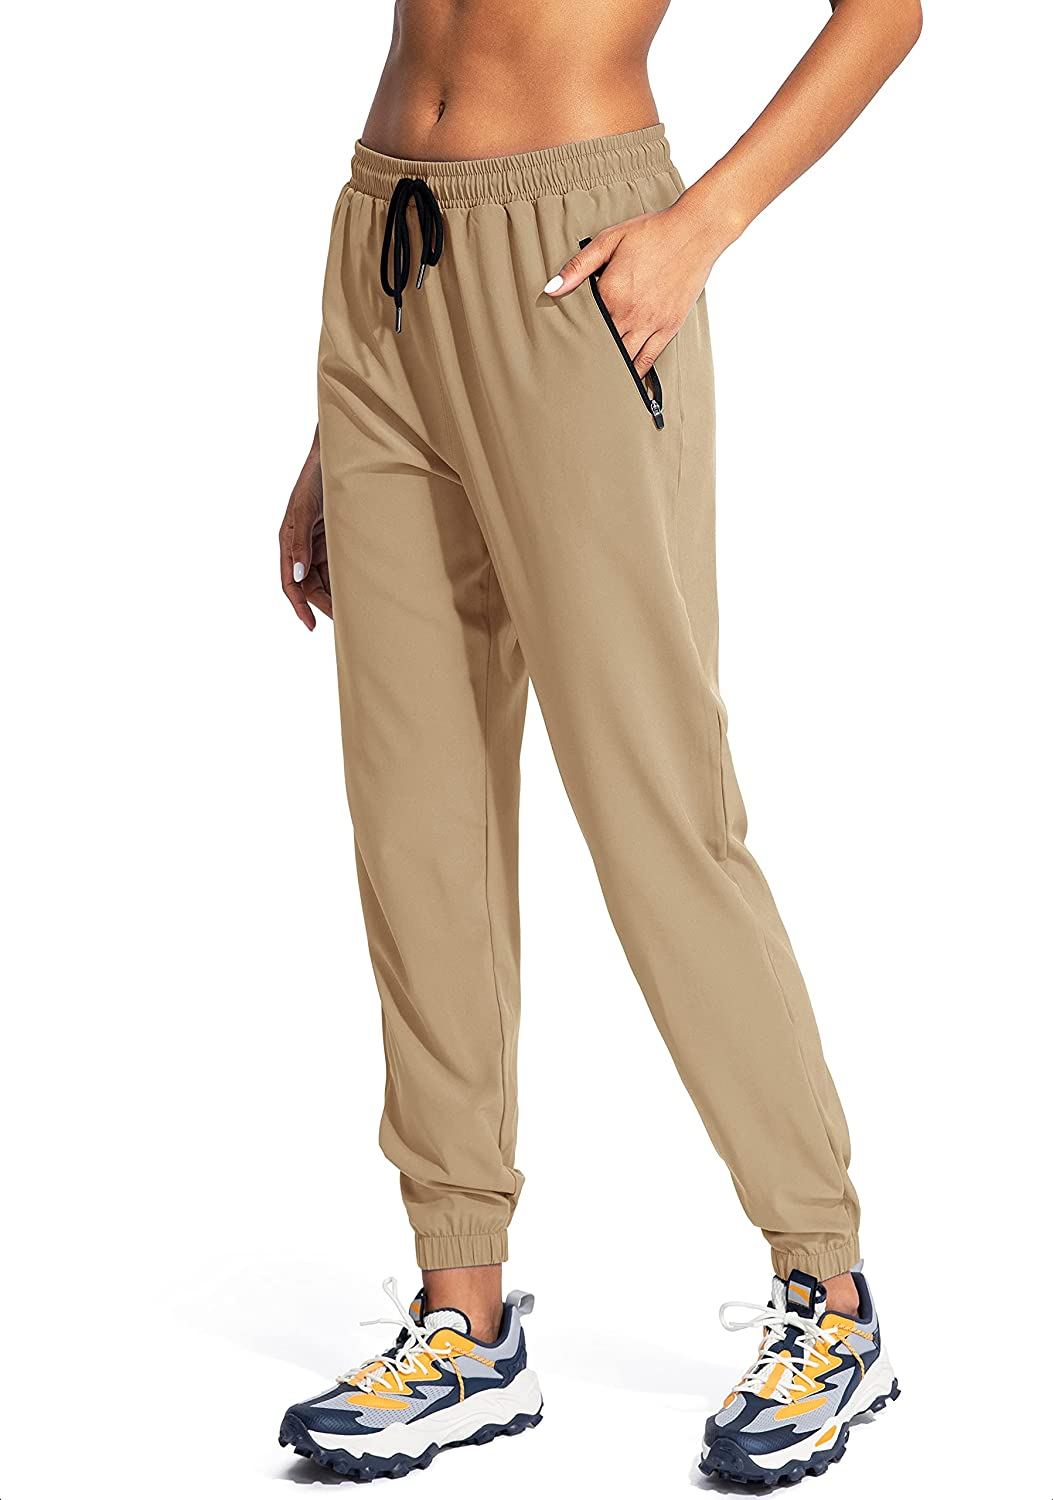 Viodia Women's Lightweight Joggers 70% OFF Outlet Hiking Workout Athlet Max 76% OFF Running